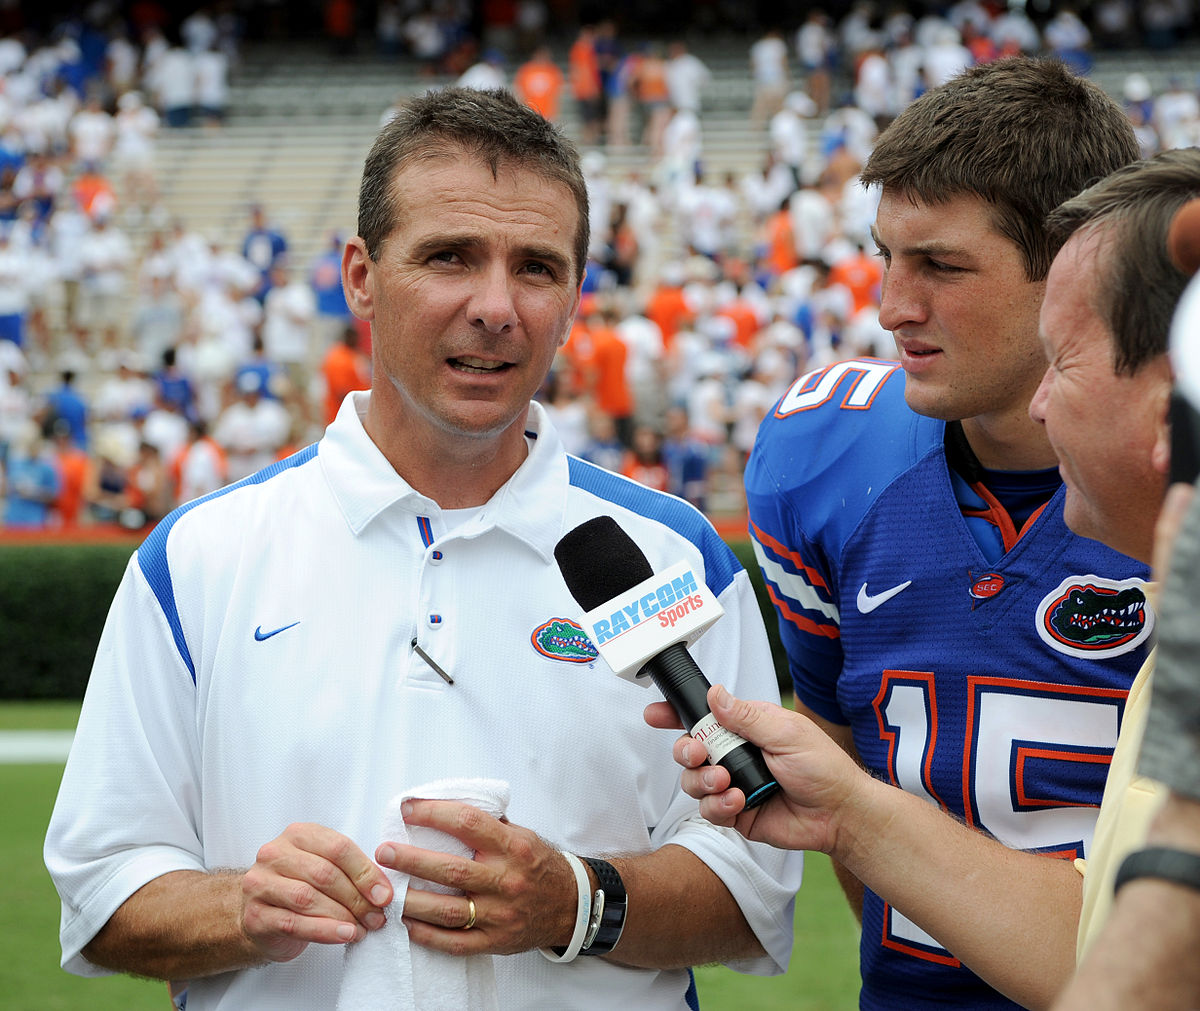 2008 Florida Gators football team - Wikipedia